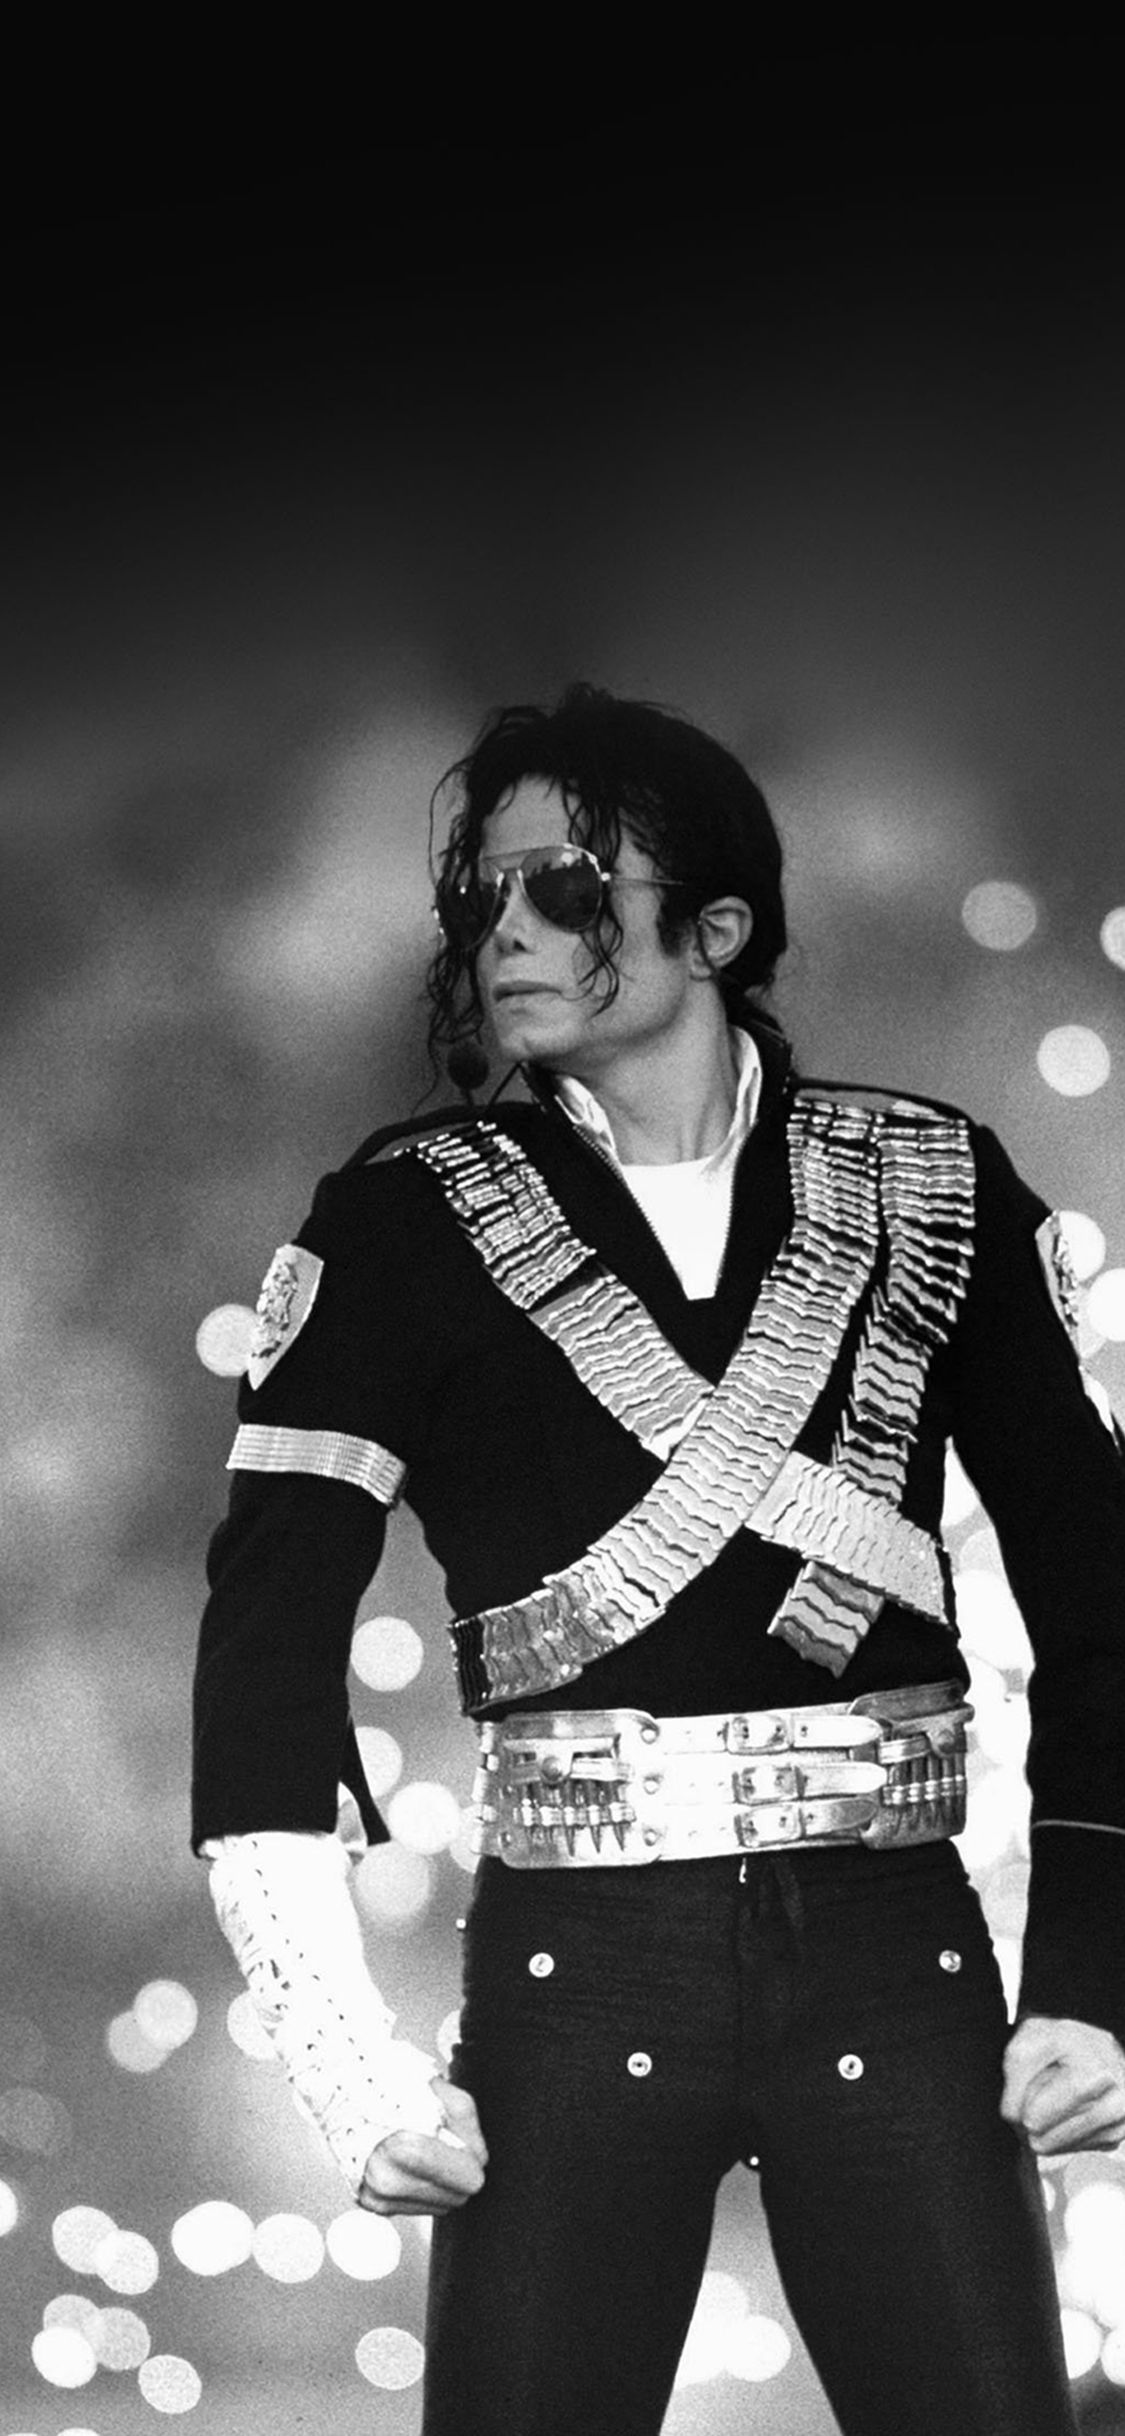 Michael Jackson Bw Concert King Of Pop 1309397 Hd